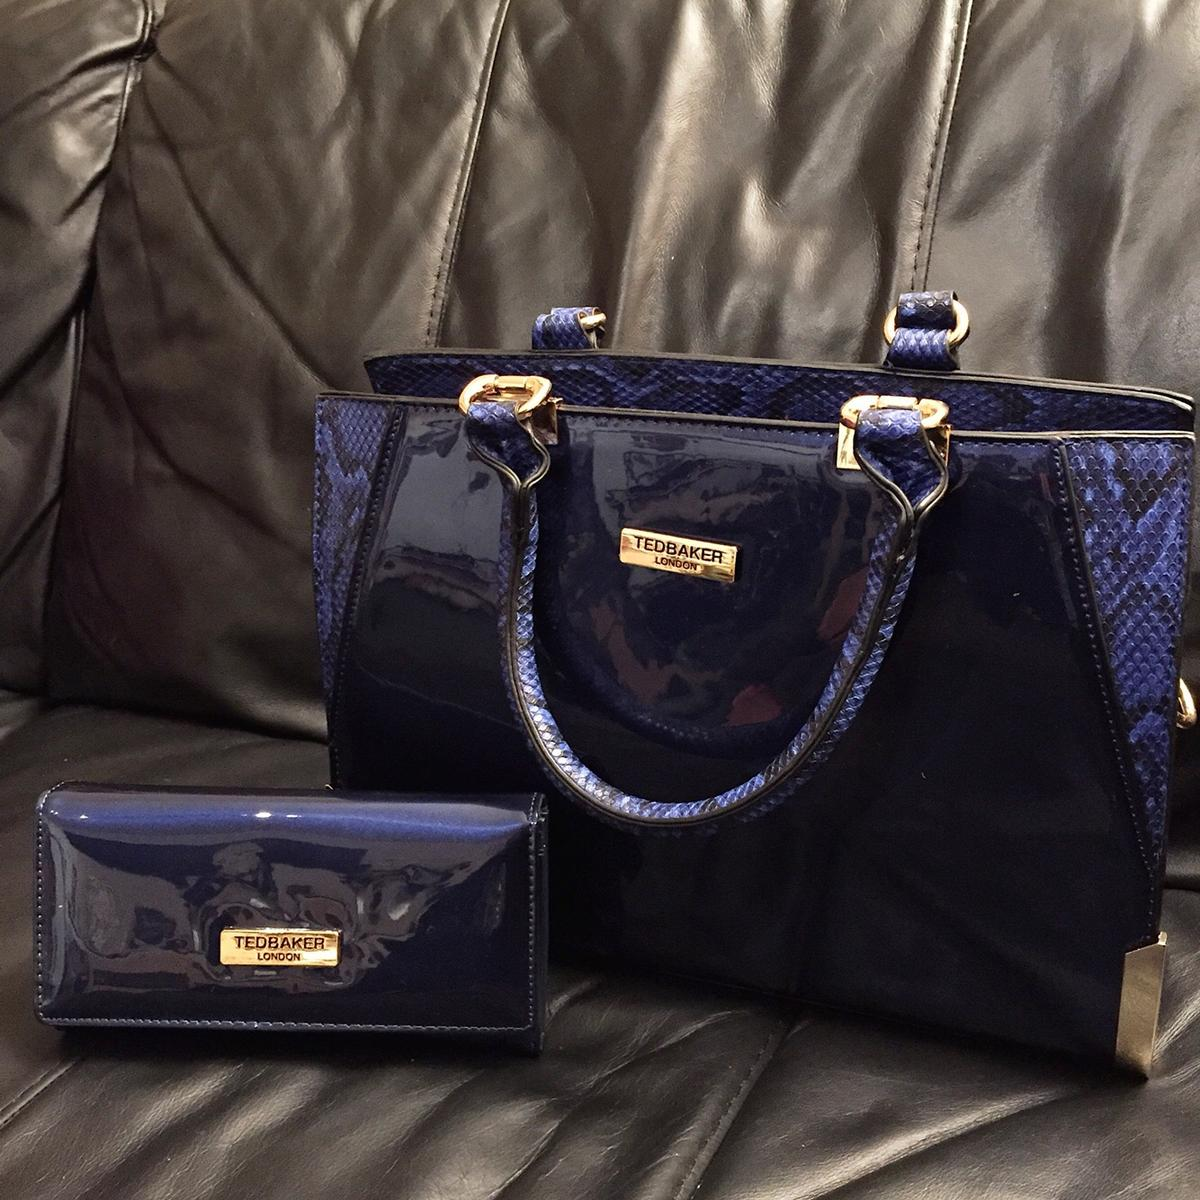 09d9916562e4 Ted Baker bag and purse in BN23 Eastbourne for £49.99 for sale - Shpock